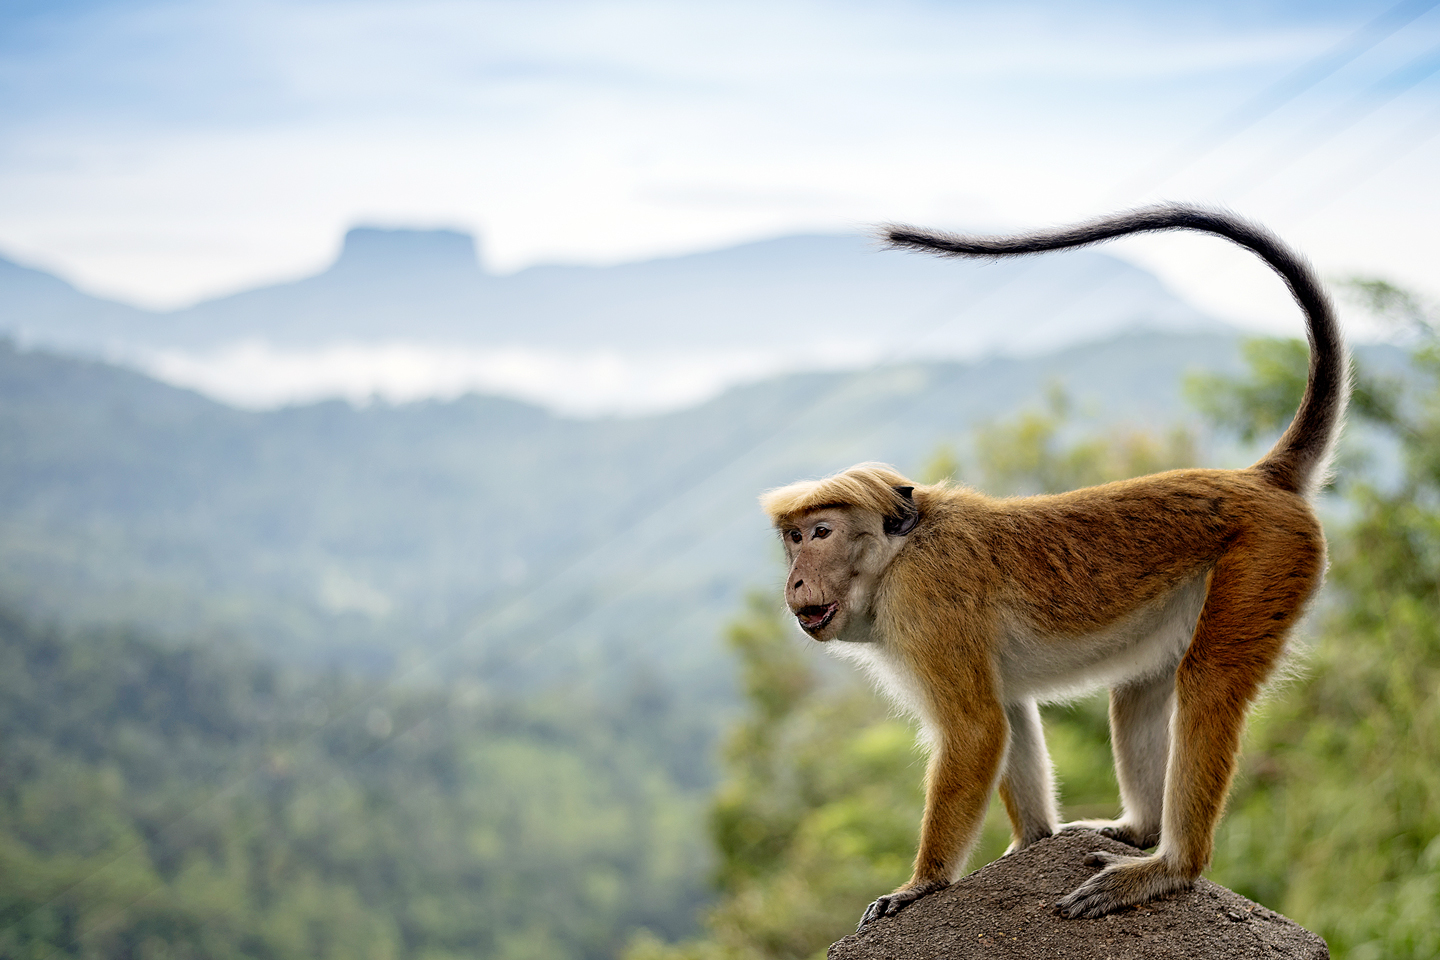 Monkey stood on a rock in Sri Lanka